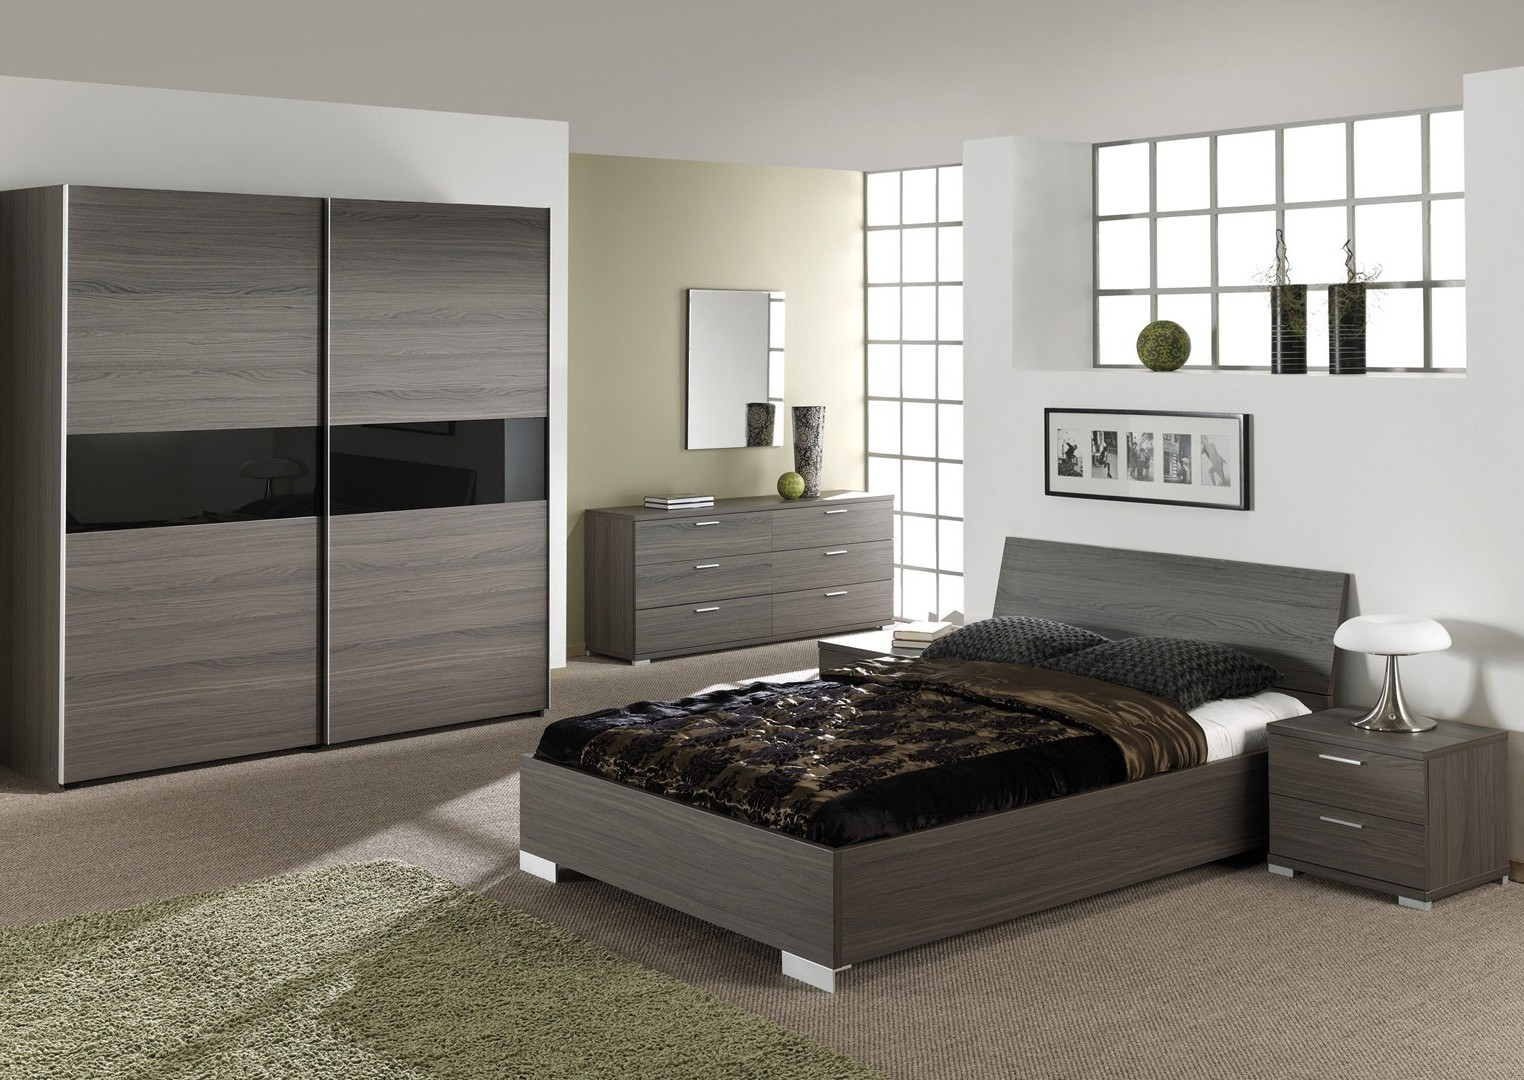 Chambre a coucher complete but affordable armoire with for Destockage chambre complete adulte